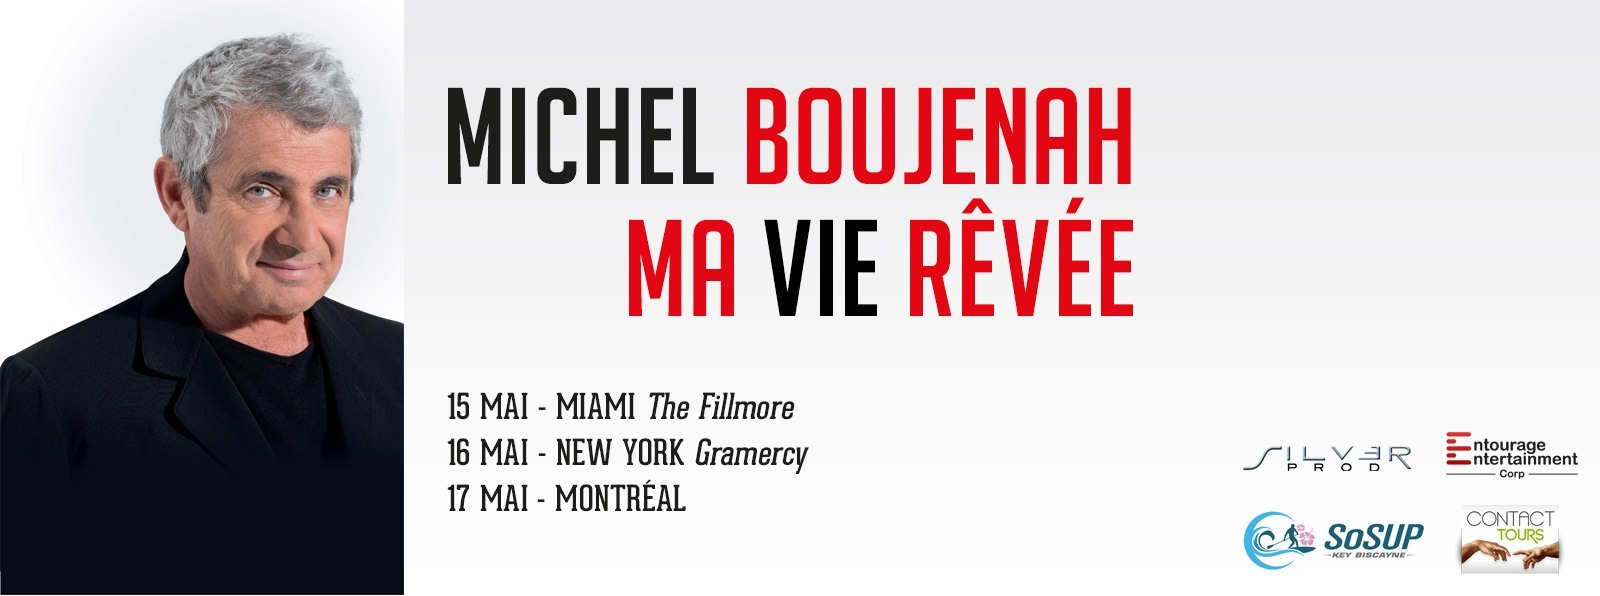 Michel Boujenah - Miami - New York - Denver - Los Angeles